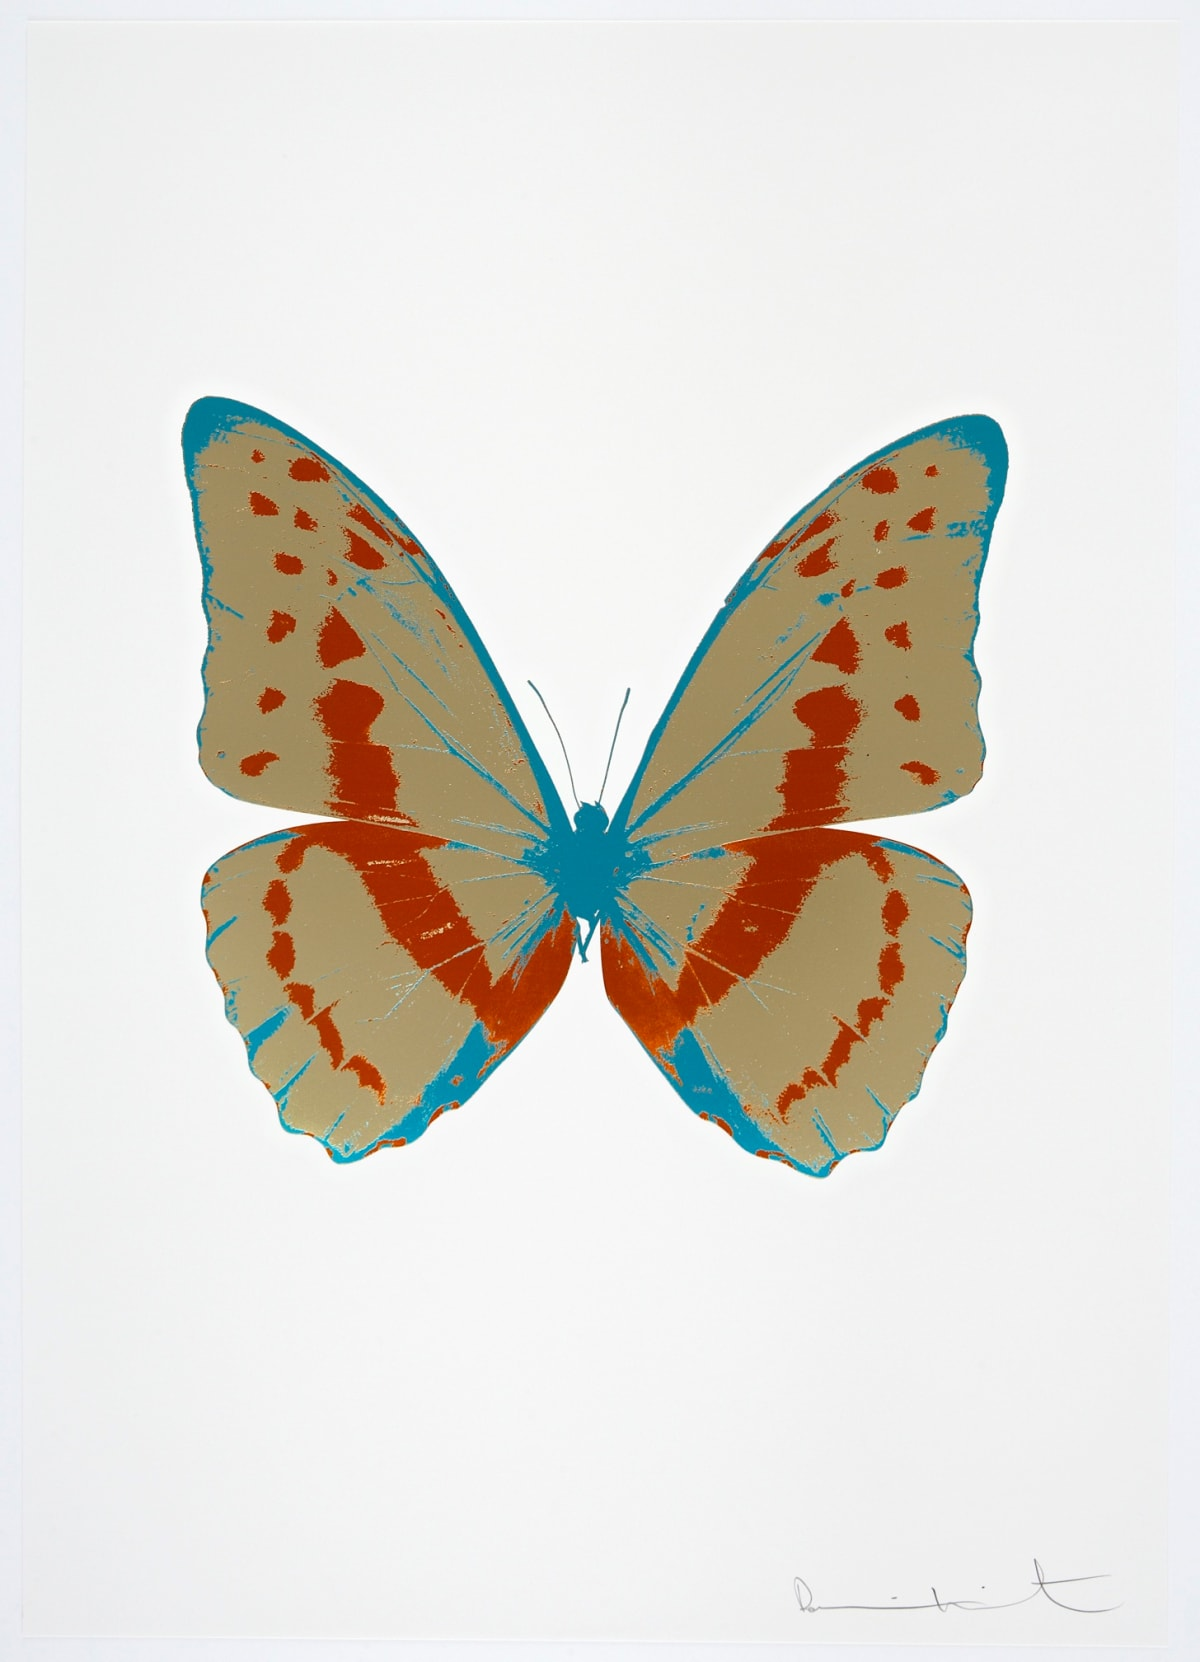 Damien Hirst The Souls III - Cool Gold/Prairie Copper/Topaz, 2010 3 colour foil block on 300gsm Arches 88 archival paper. Signed and numbered. Published by Paul Stolper and Other Criteria 72 x 51cm OC7916 / 660-19 Edition of 15